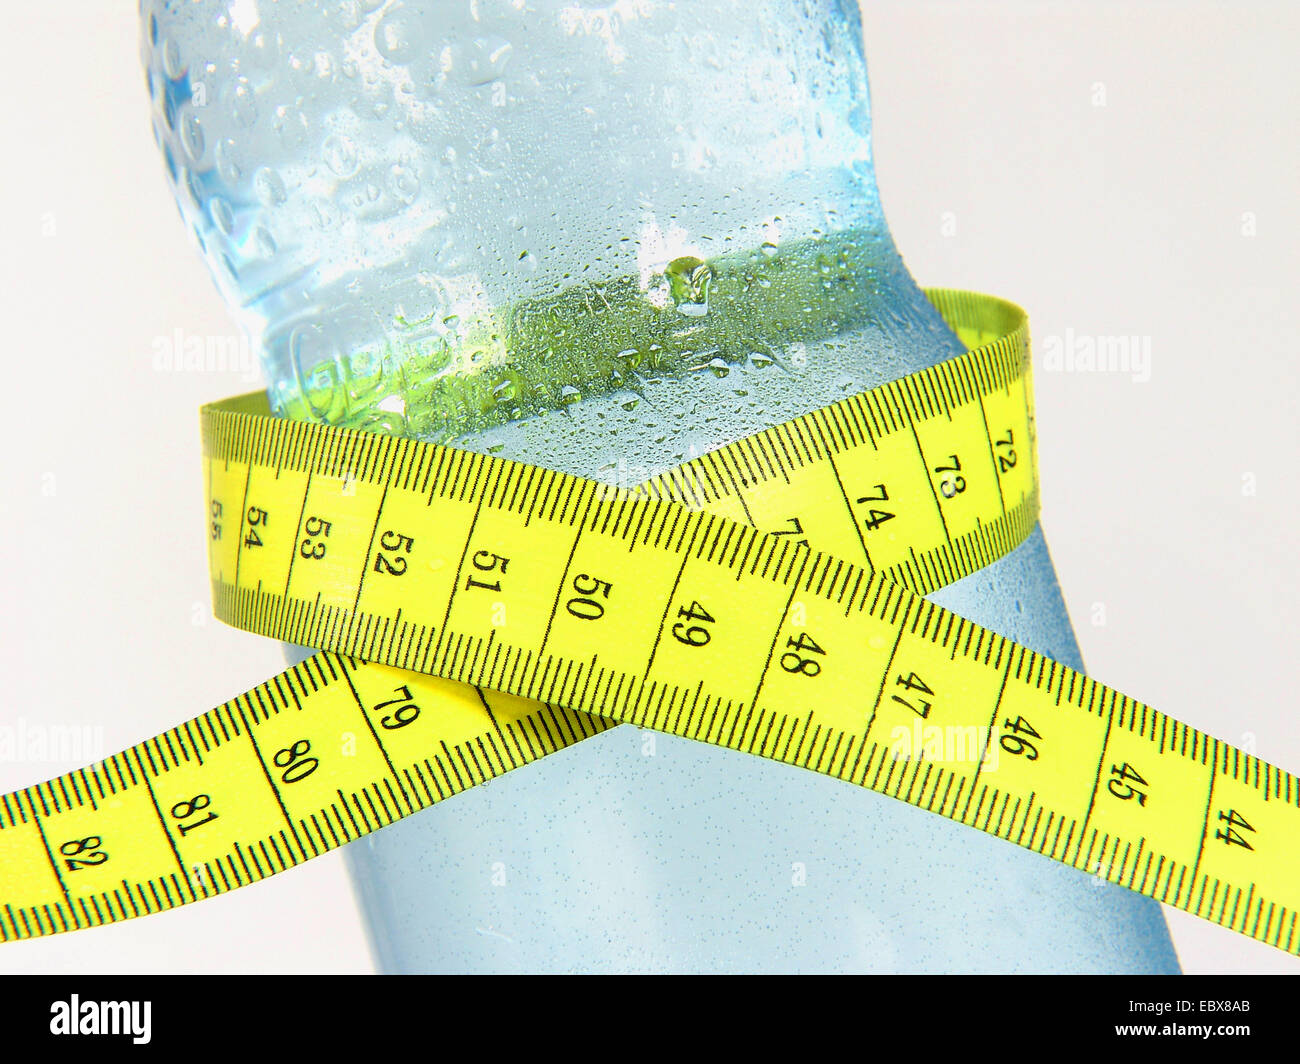 Mineral water bottle with tape measure - Stock Image